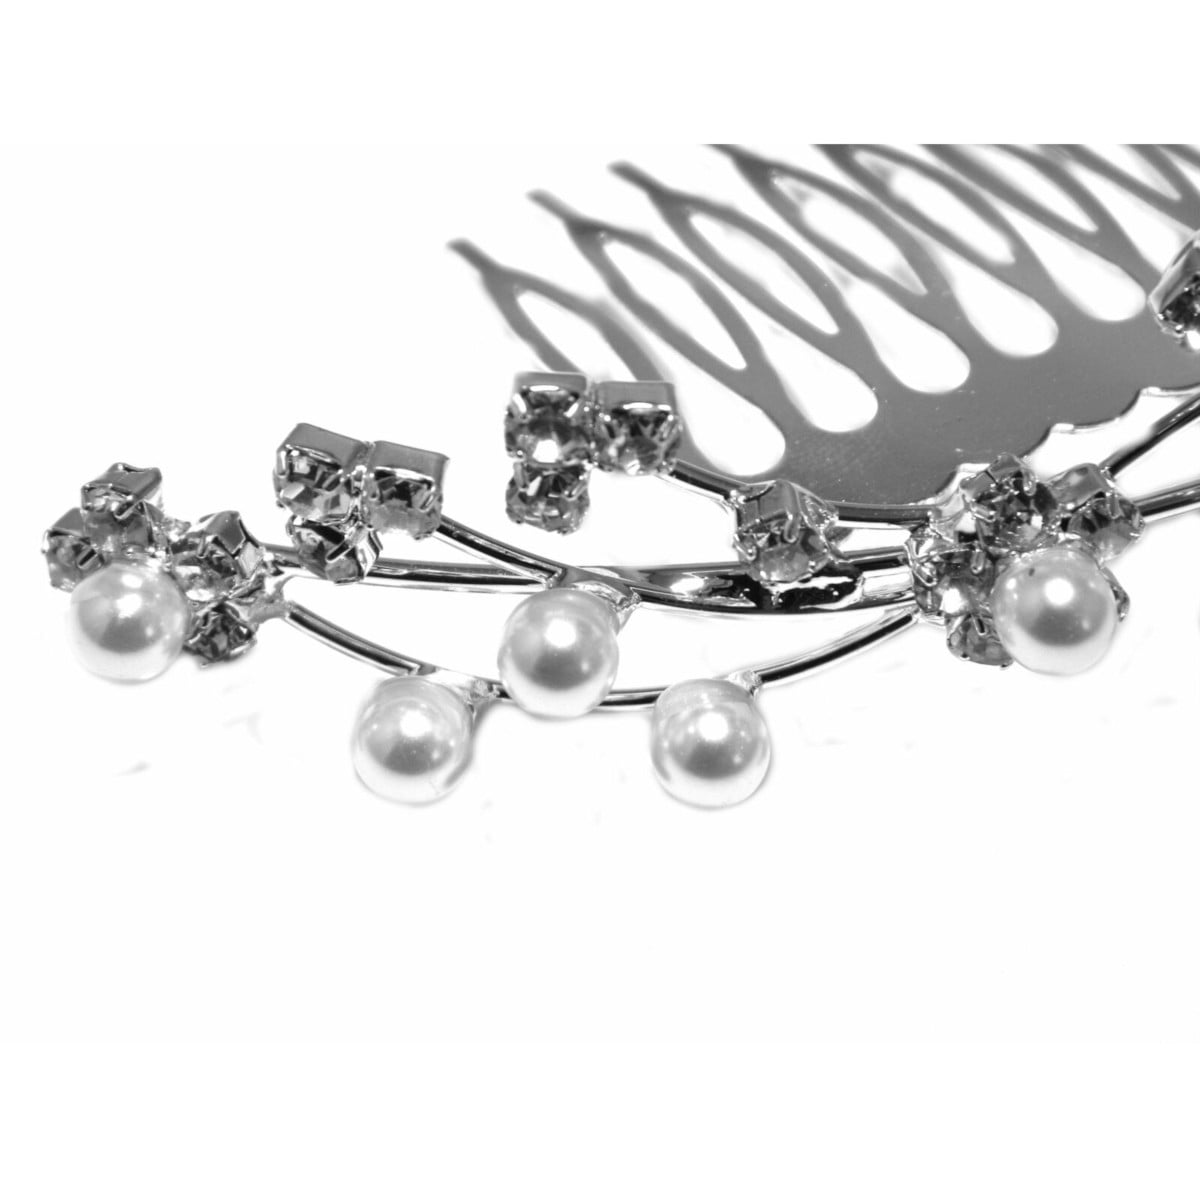 Hair comb with clear crystals and pearls ideal bridal wedding piece close